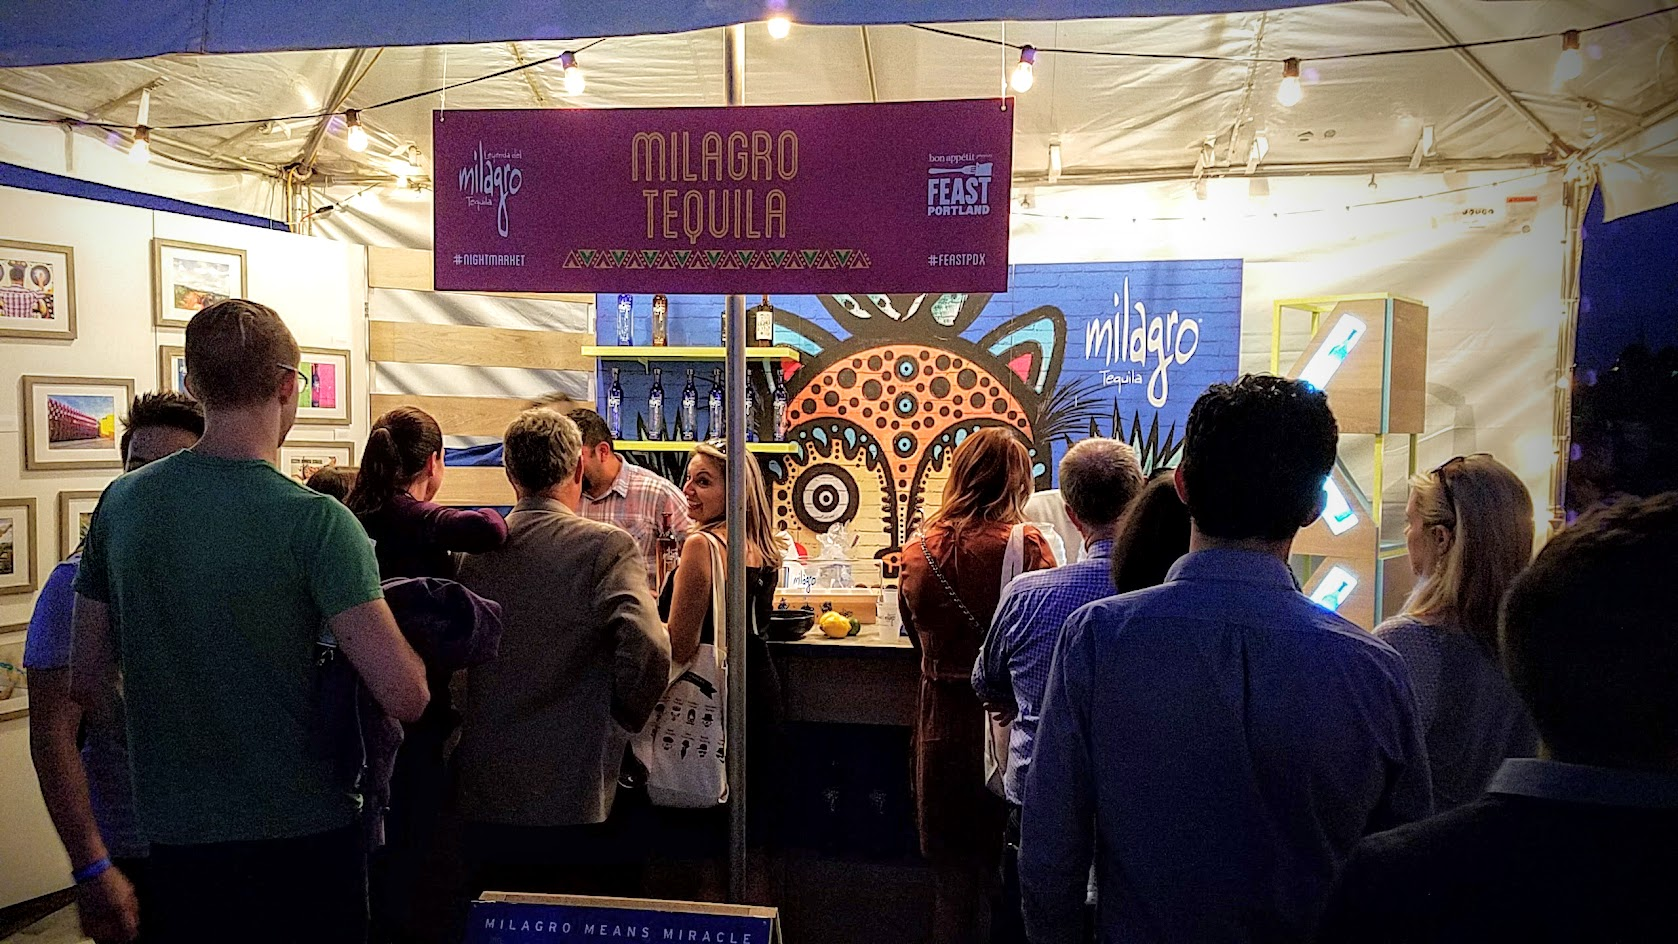 At Feast PDX Night Market 2016 Milagro Tequila had options of Agua Frescas and Horchata to combine (or not) with their tequila tastings